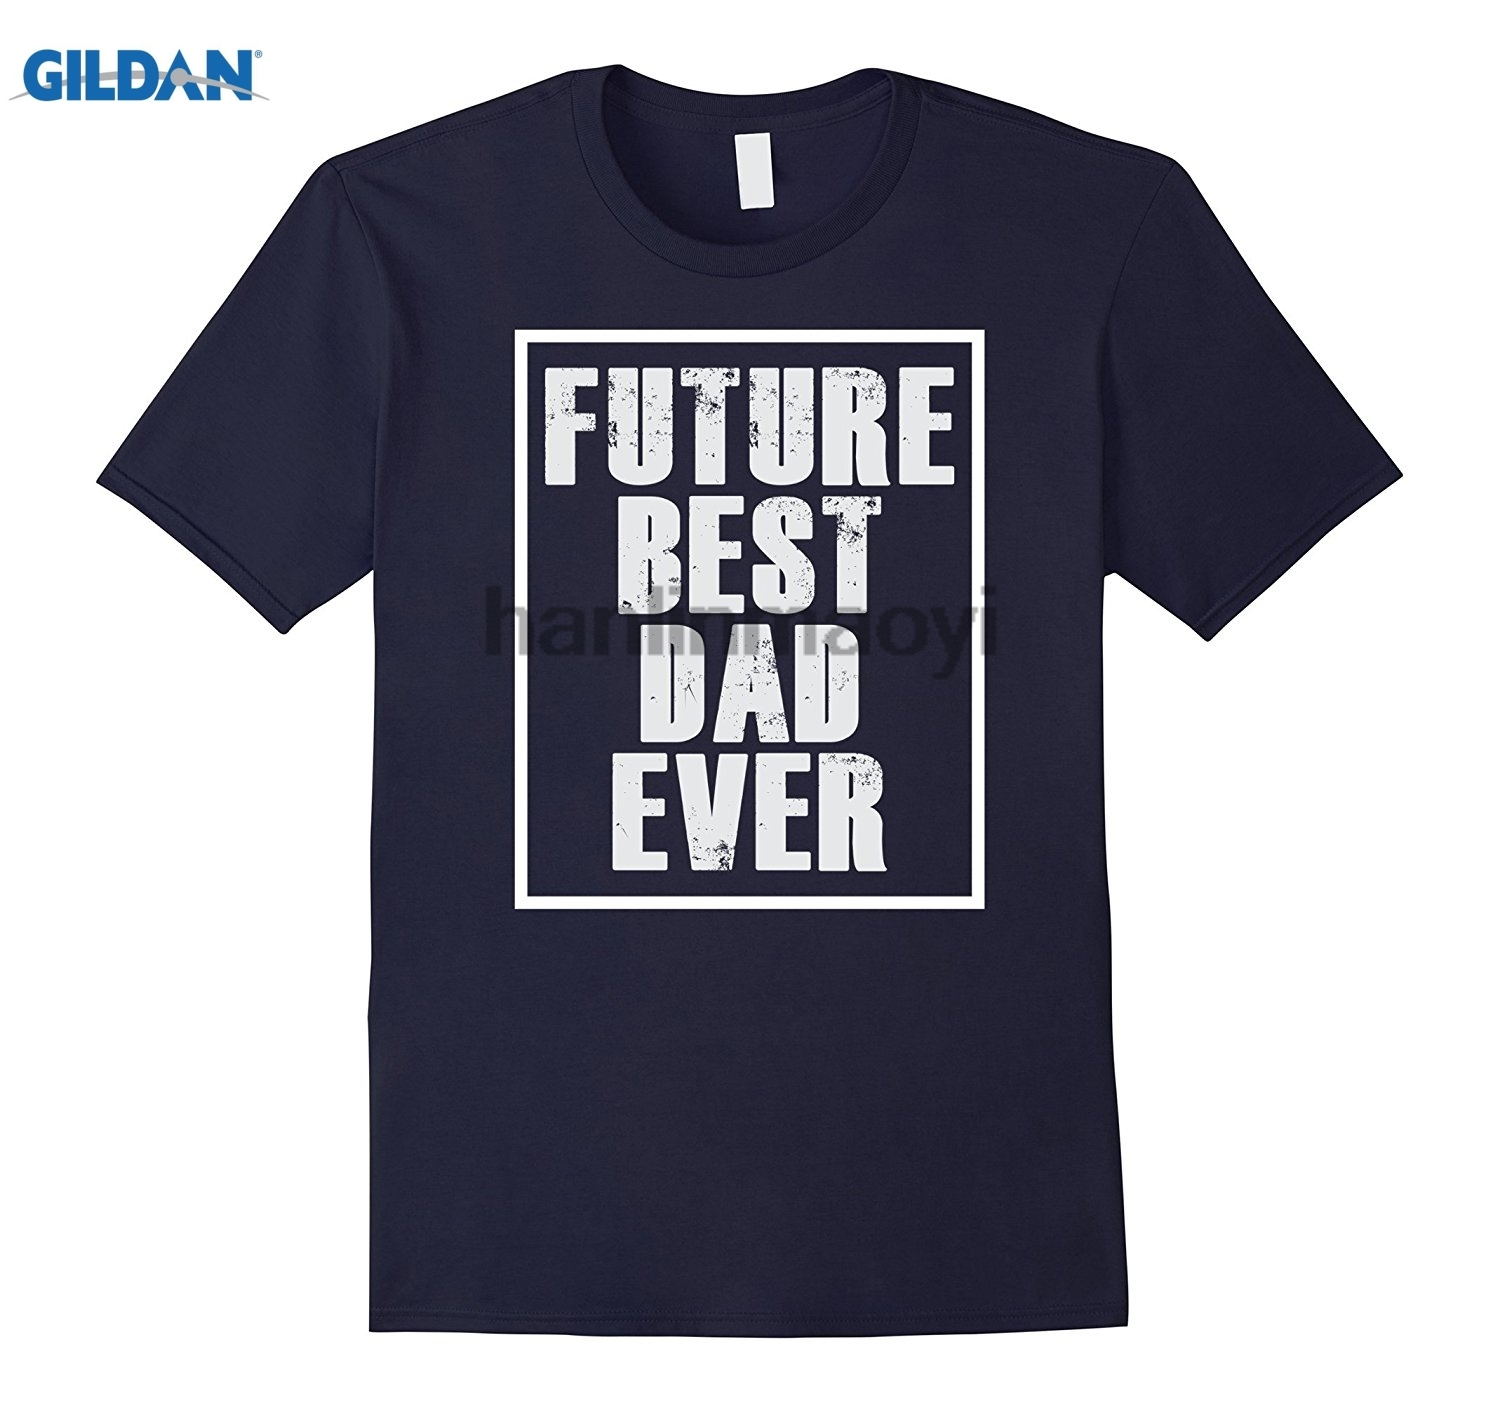 GILDAN Future Best Dad Ever T-shirt for Fathers Day Funny Gift